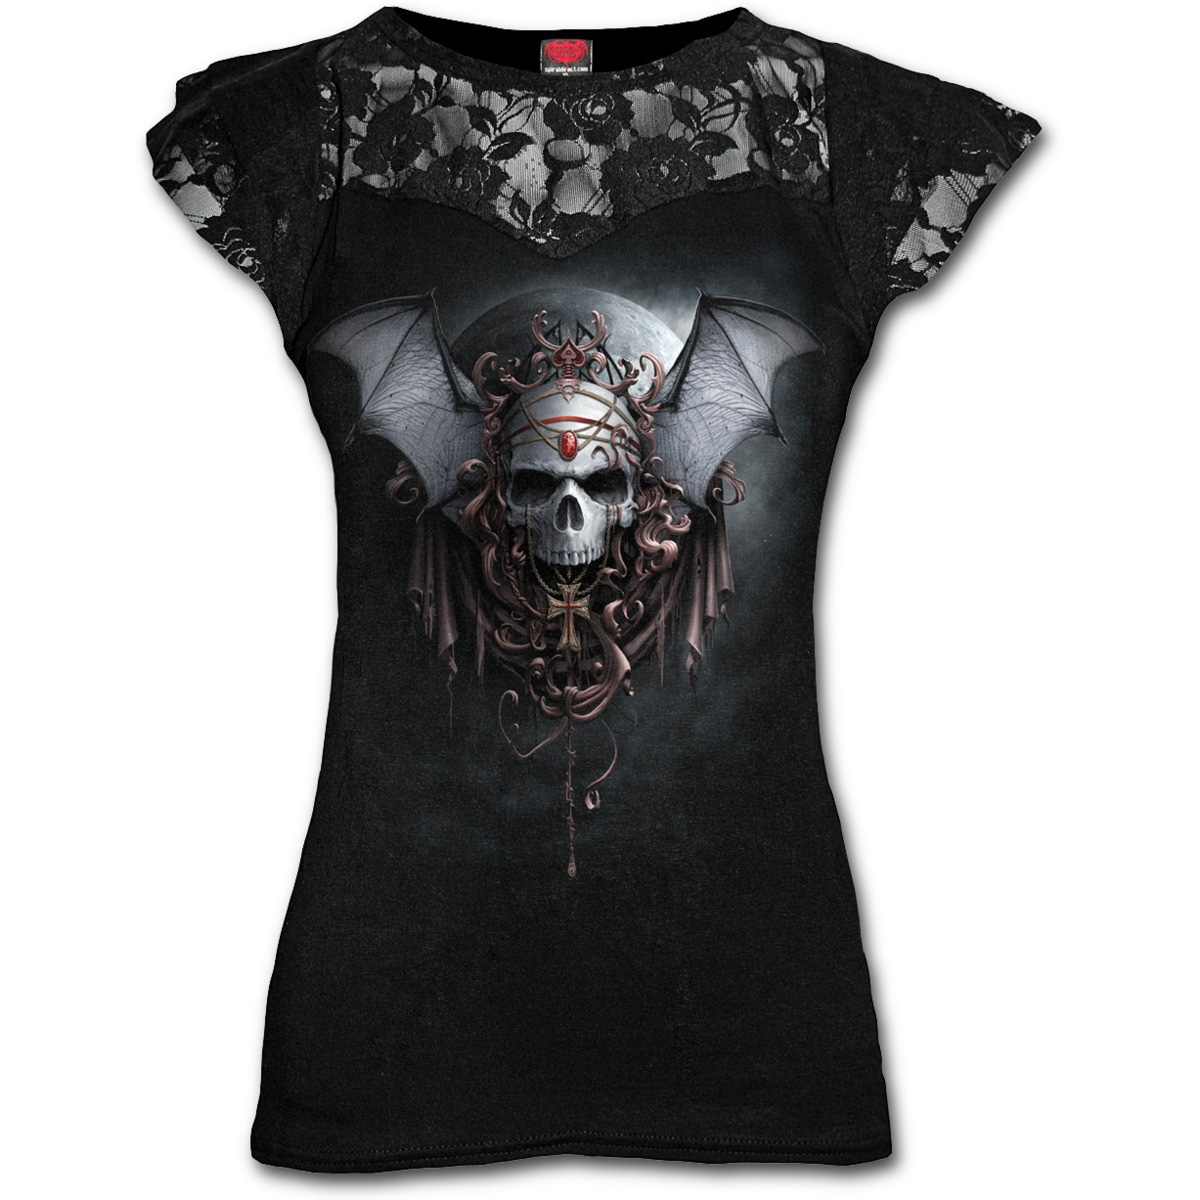 SPIRAL-DIRECT-Ladies-Black-Gothic-GOTH-NIGHTS-Skull-Top-Lace-Bat-All-Sizes thumbnail 7